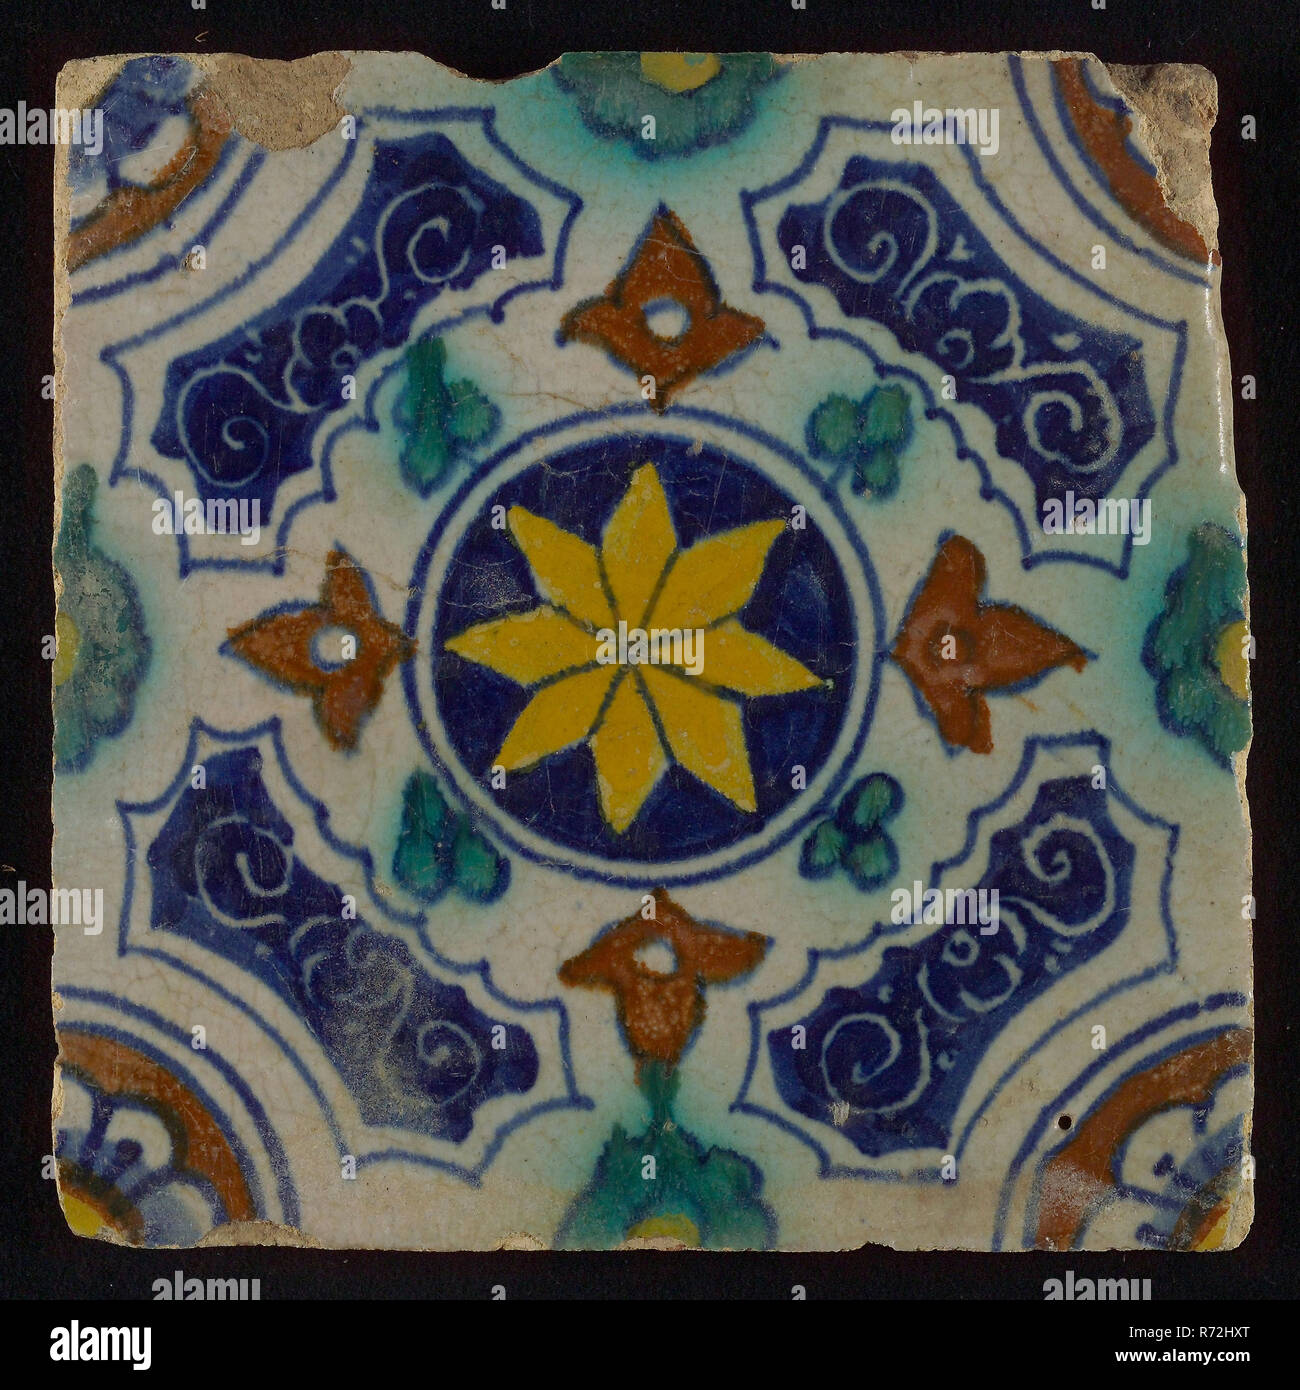 Tile, blue, green, brown and yellow on white, central yellow star in circle, sgraffito surfaces, corner motif, quarter rosette, wall tile tile sculpture ceramic earthenware glaze, baked 2x glazed painted Yellow - red shard square bevelled sides. Two or four nail holes. AIb3. - Stock Image